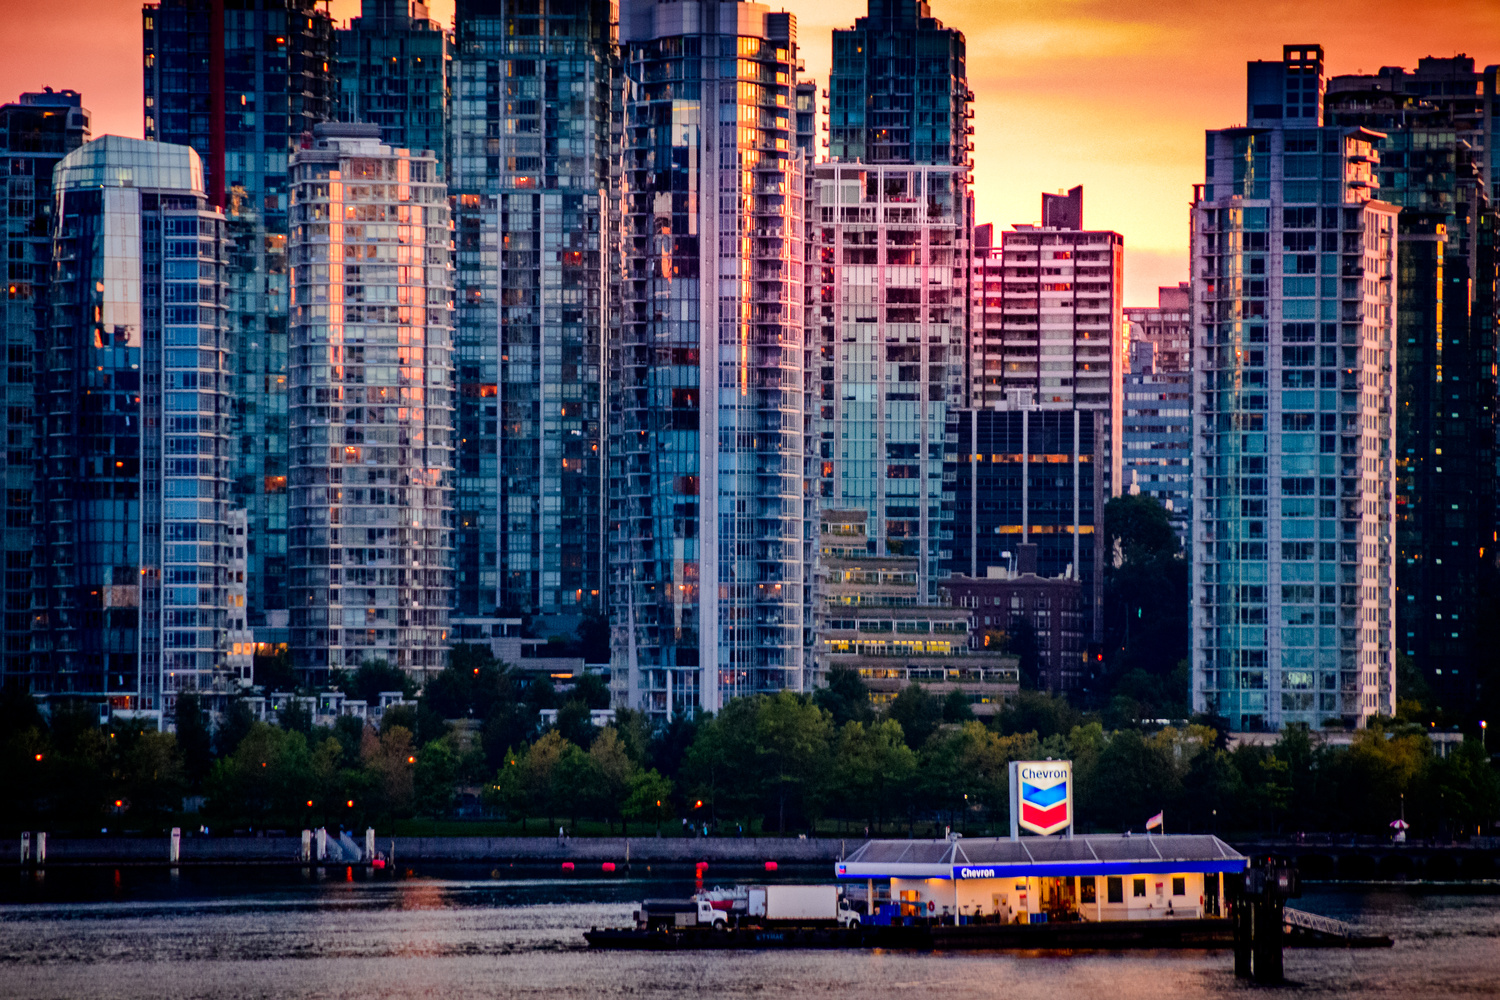 Vancouver by John Taylor